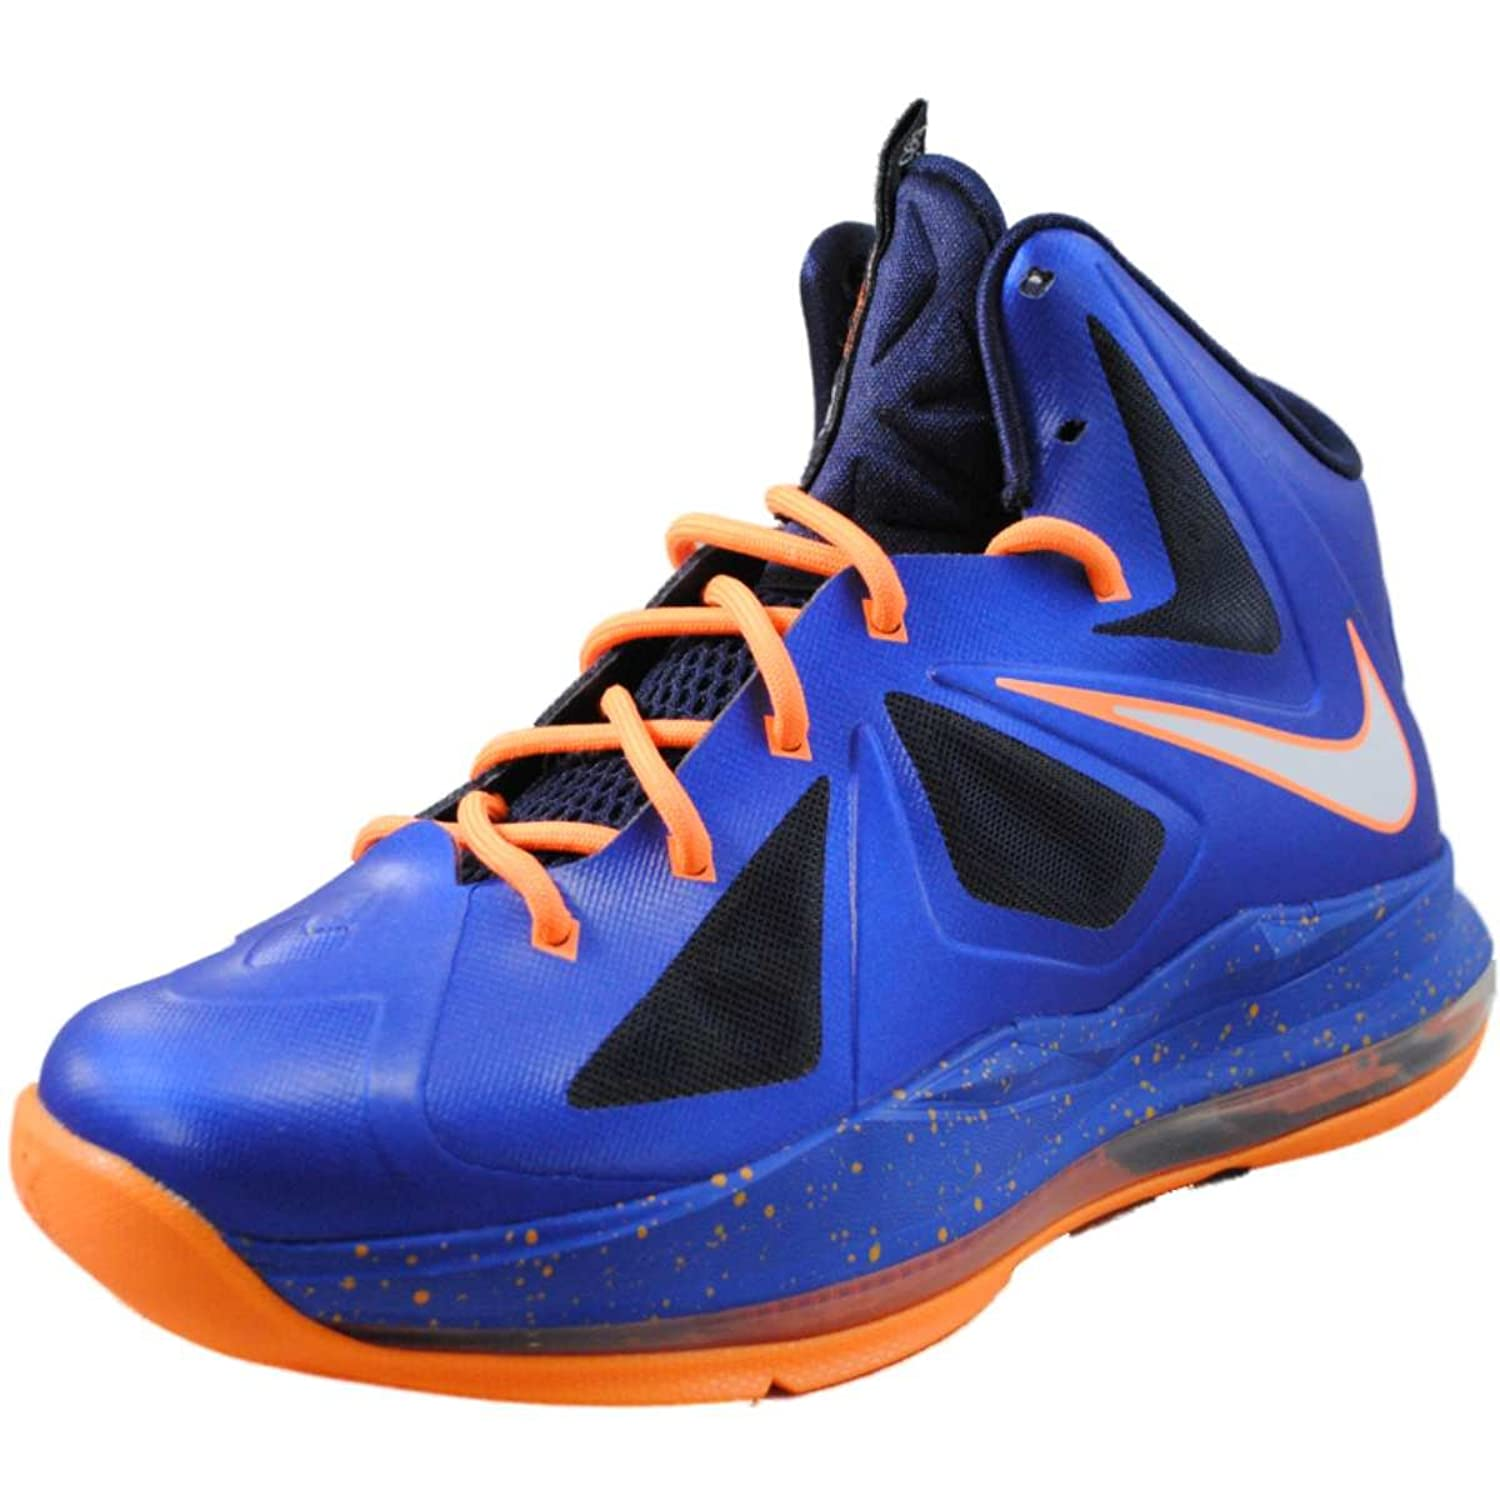 size 6.5 boys lebron 10 Embrace the power of flight with Jordan shoes ...